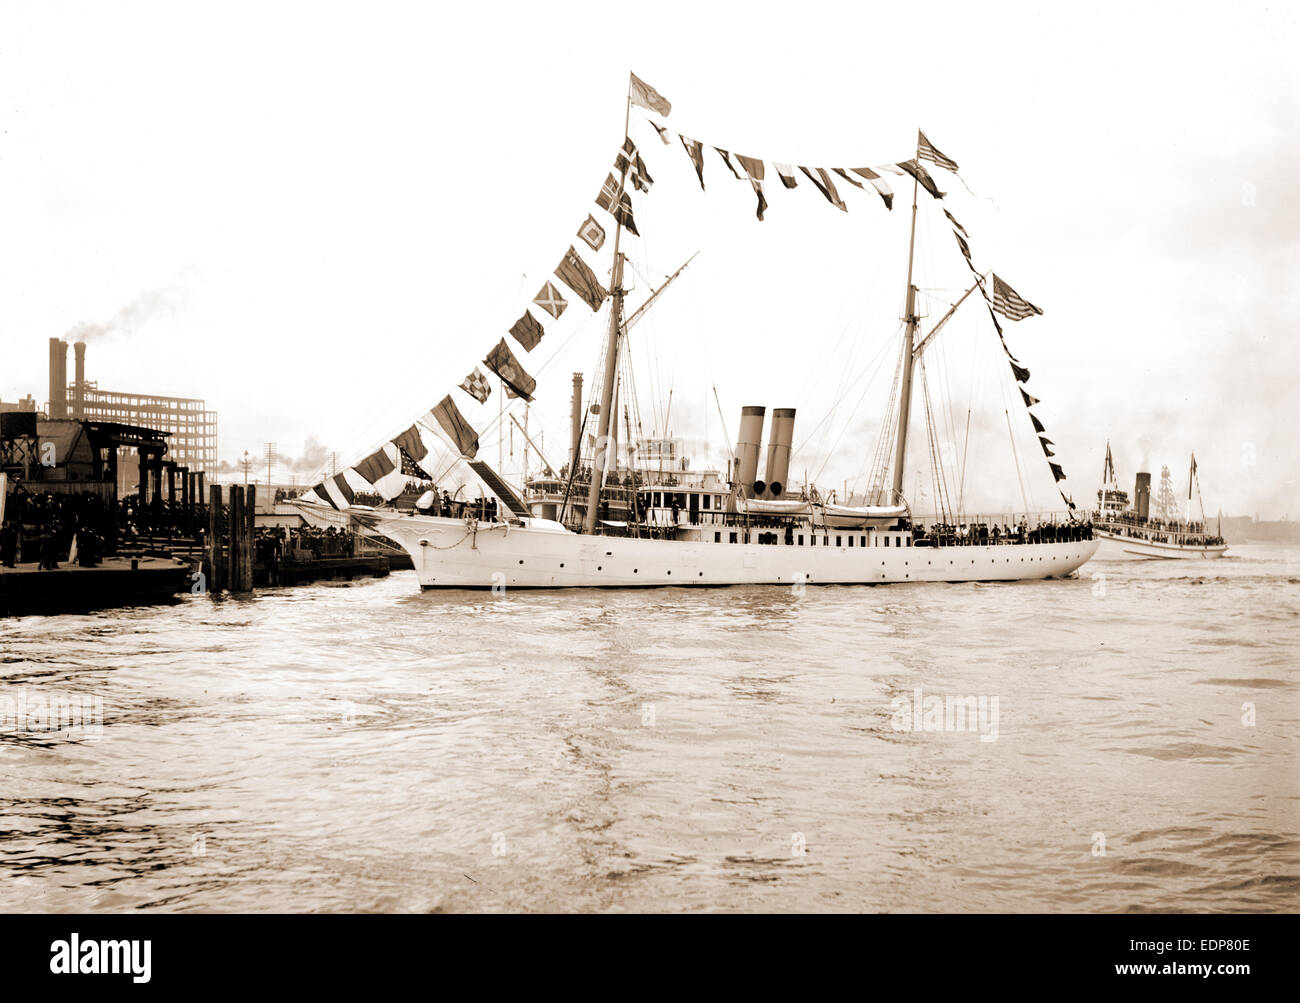 Mardi Gras, New Orleans, U.S.S.S. sic Galveston with Rex, Galveston (Cruiser), Cruisers (Warships), American, Carnival - Stock Image